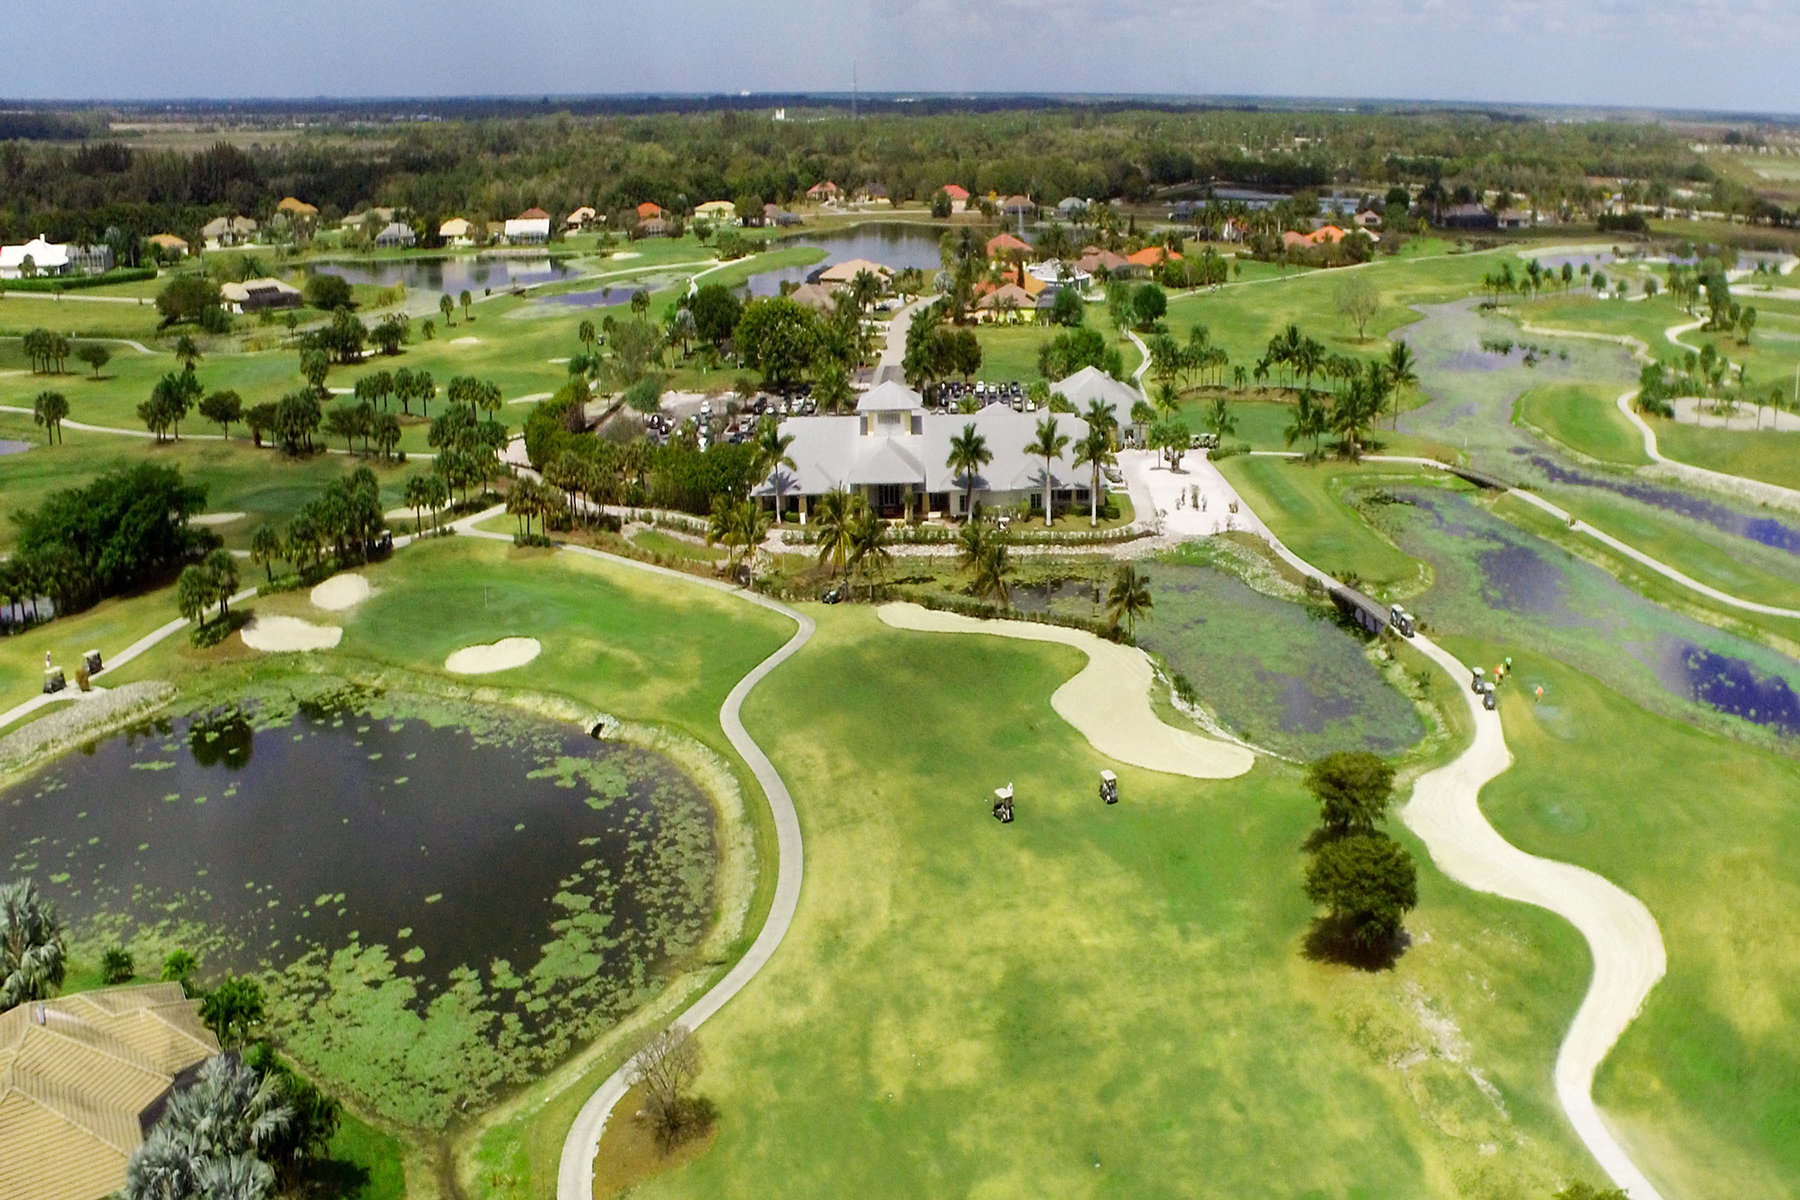 أراضي للـ Sale في ROYAL PALM GOLF ESTATES 18025 Sandtrap Dr, Naples, Florida, 34114 United States